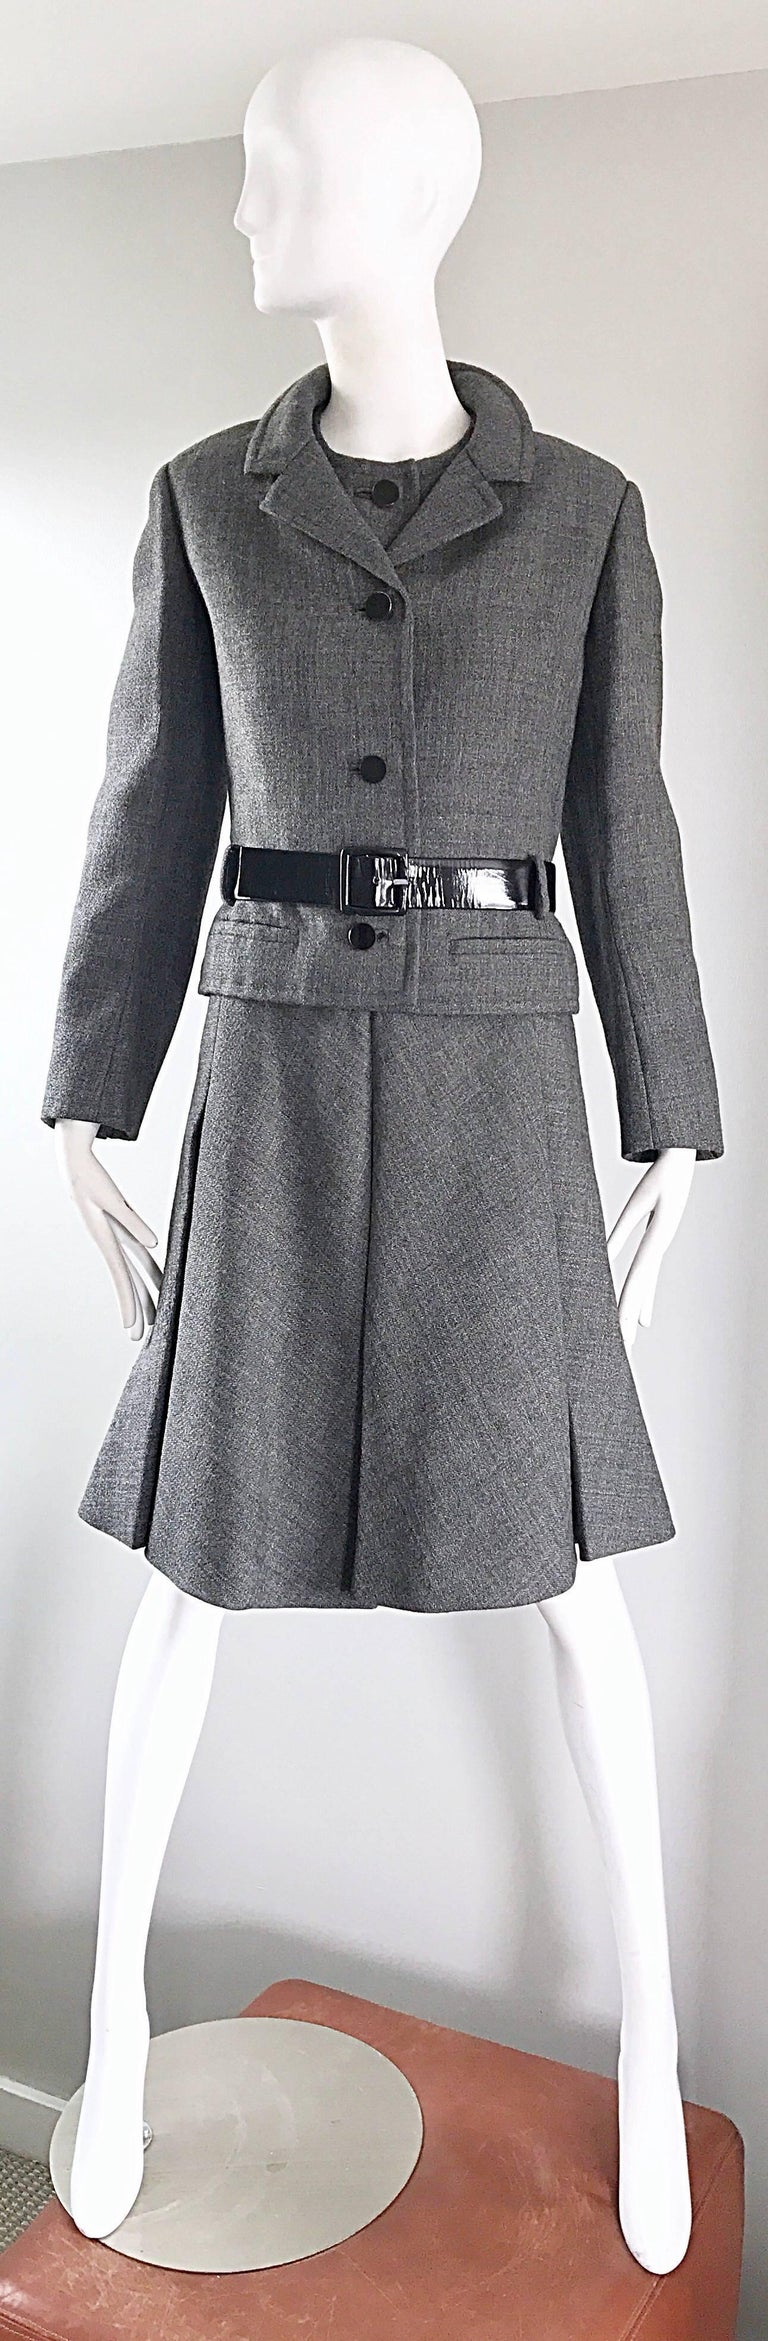 Gray Nina Ricci Haute Couture Vintage Grey Wool Dress and Jacket Ensemble, 1960s   For Sale